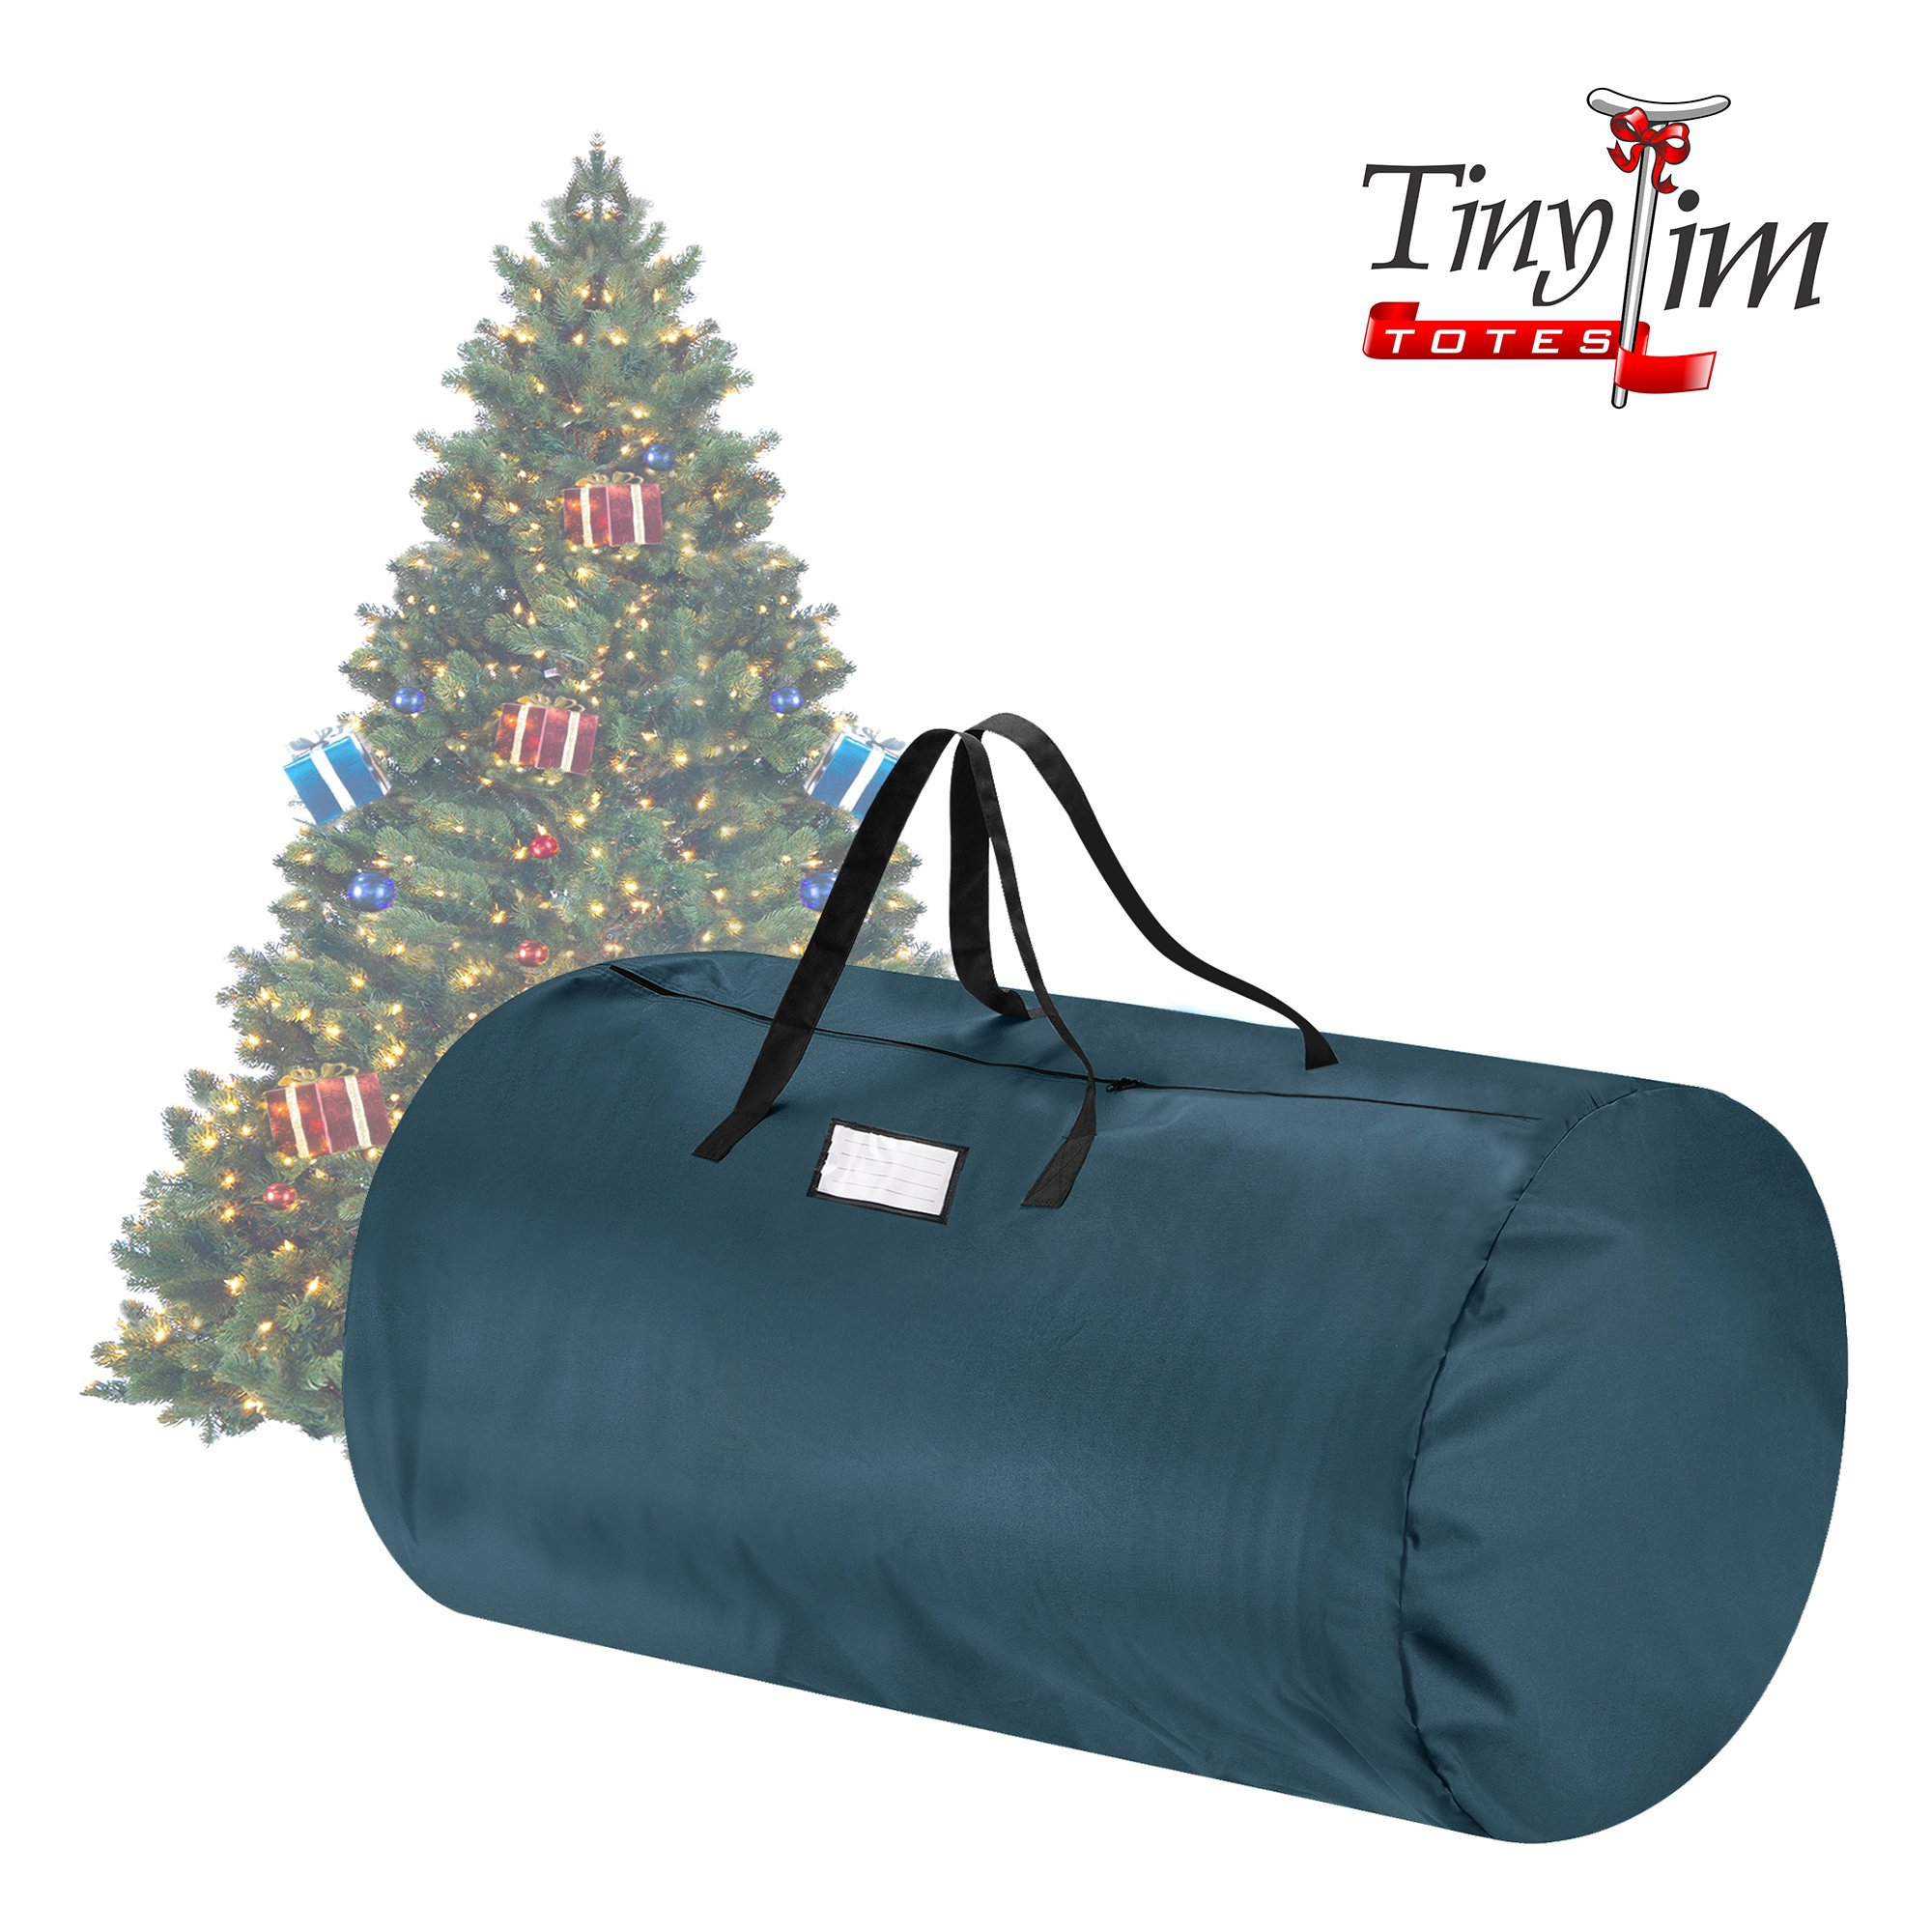 Tiny Tim Totes 83-DT5564 Premium Canvas Christmas Storage Bag | Extra Large for 12 Foot Tree | Green